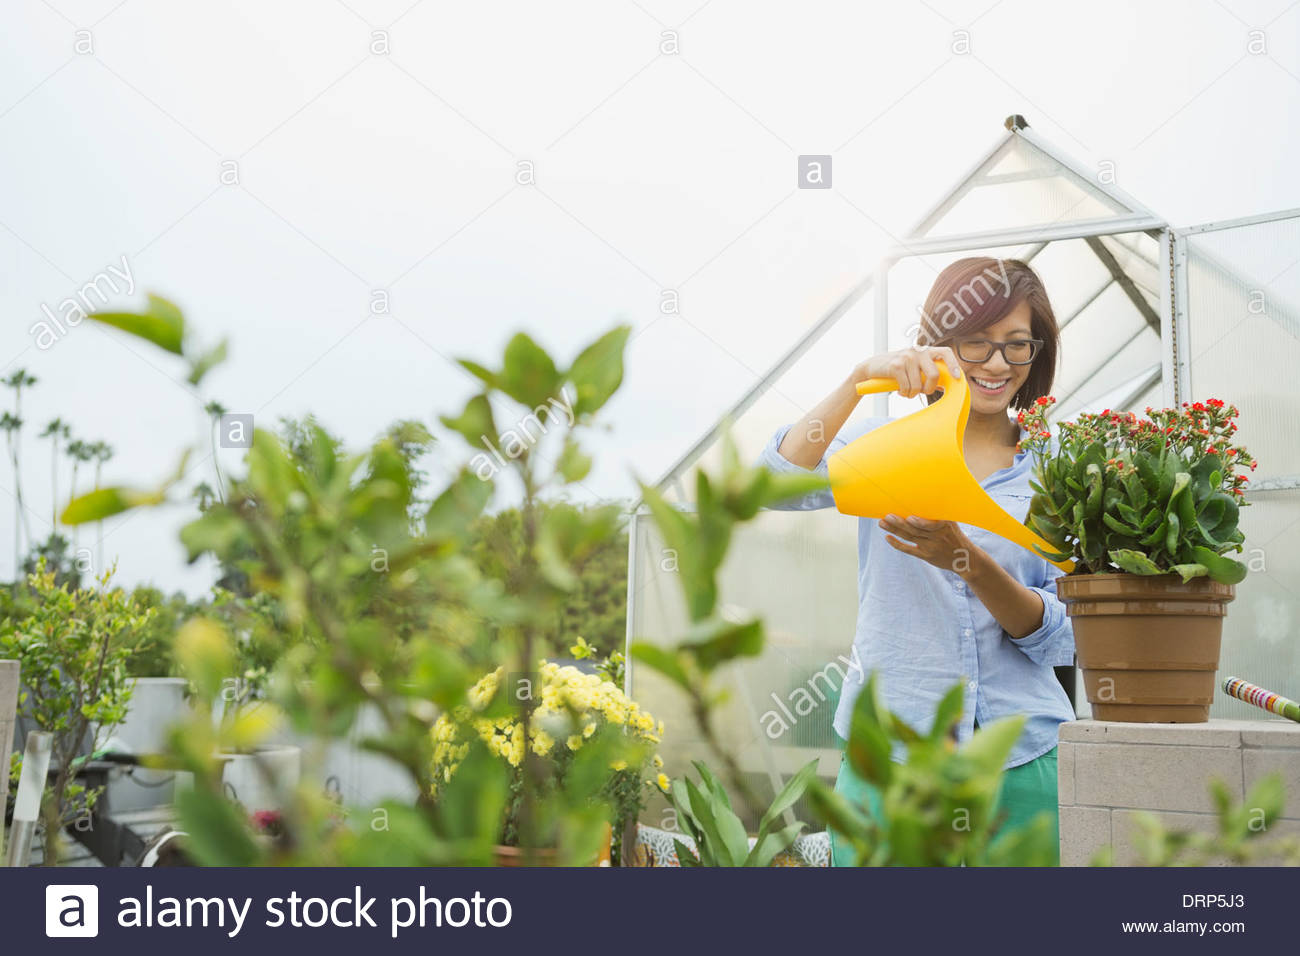 Woman watering flowers in greenhouse - Stock Image